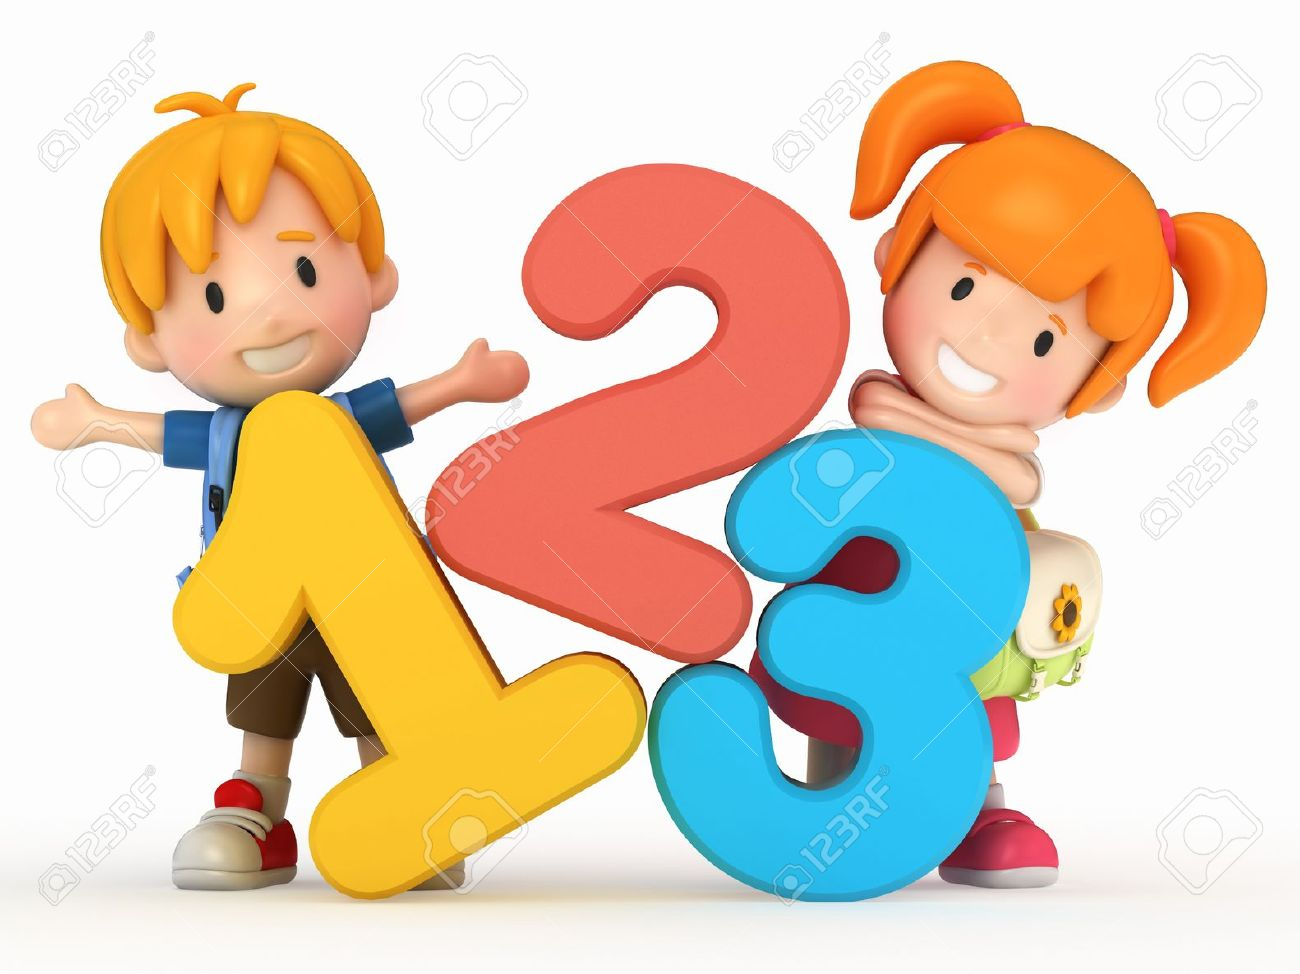 Kids learning math clipart.